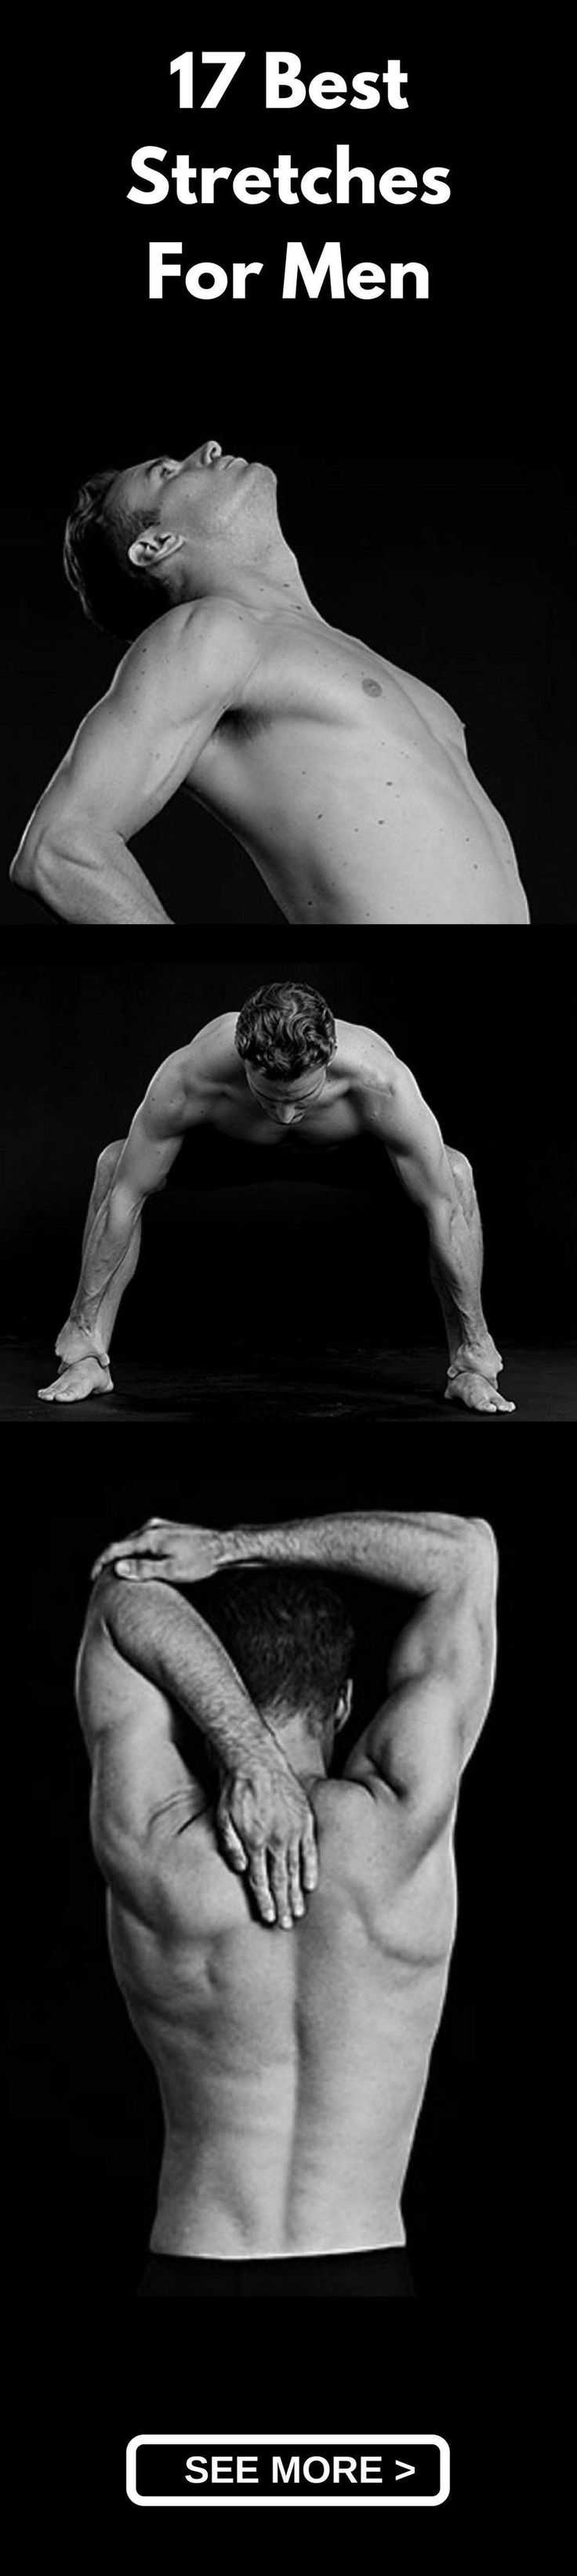 men's fitness best stretches for men